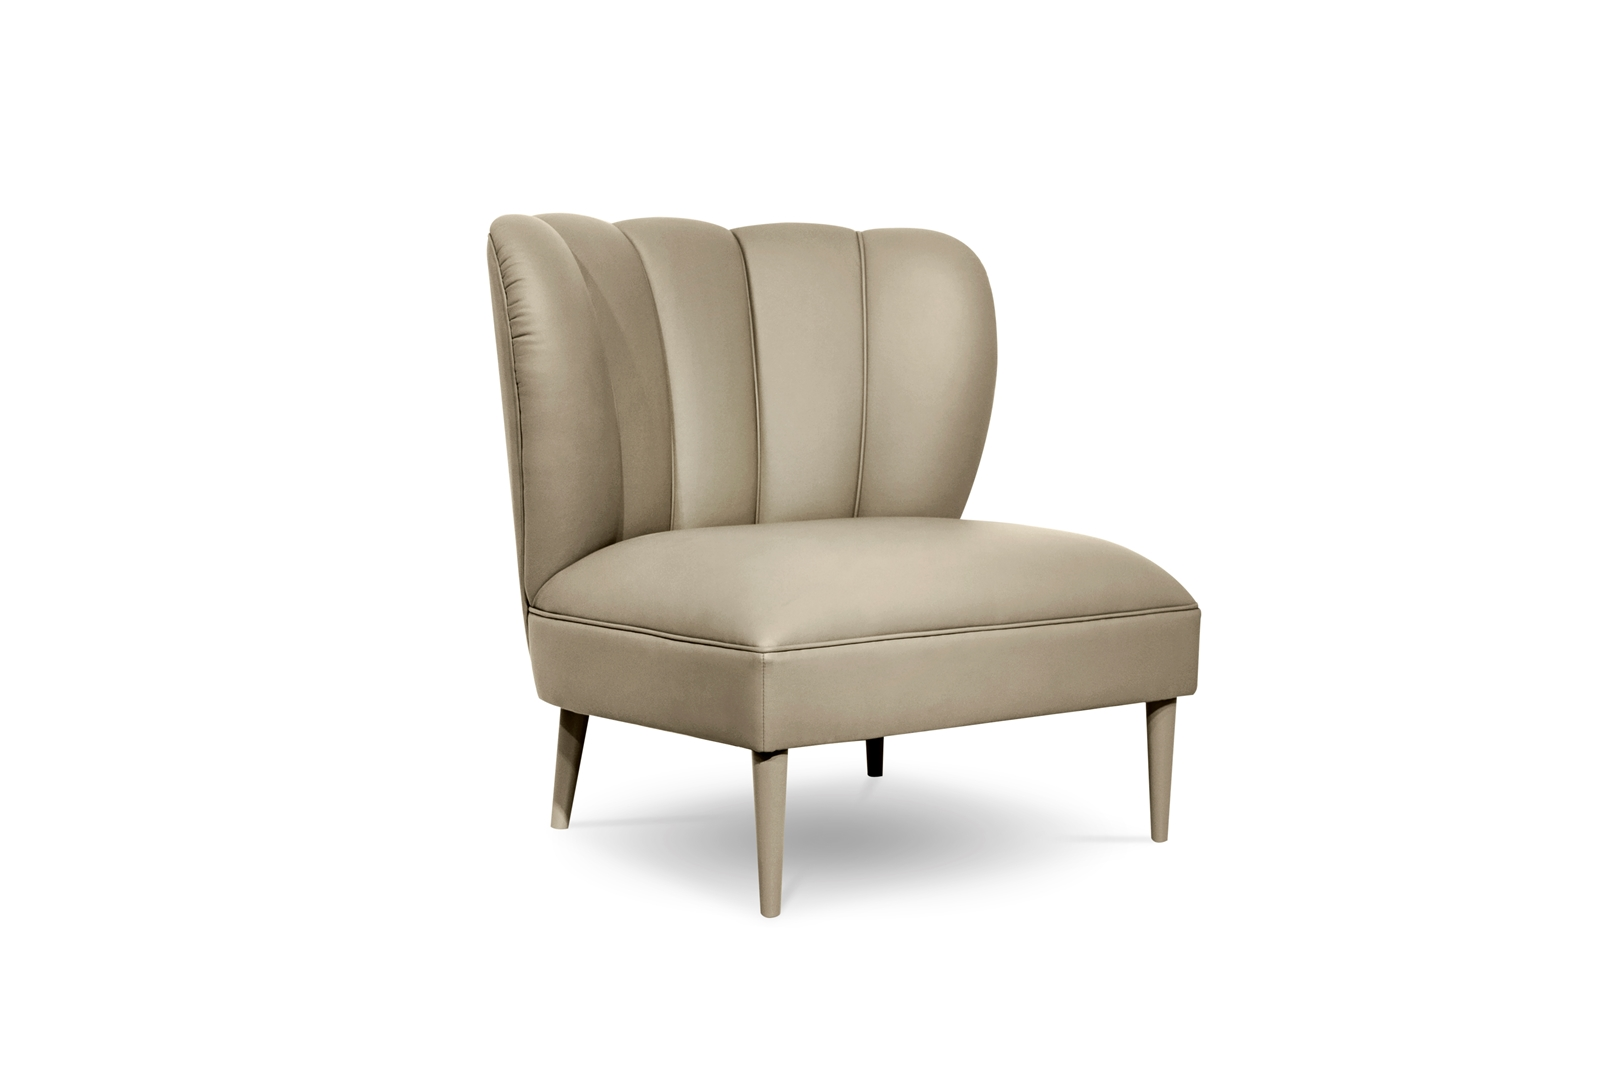 dalyan-armchair-2-HR (Copy)